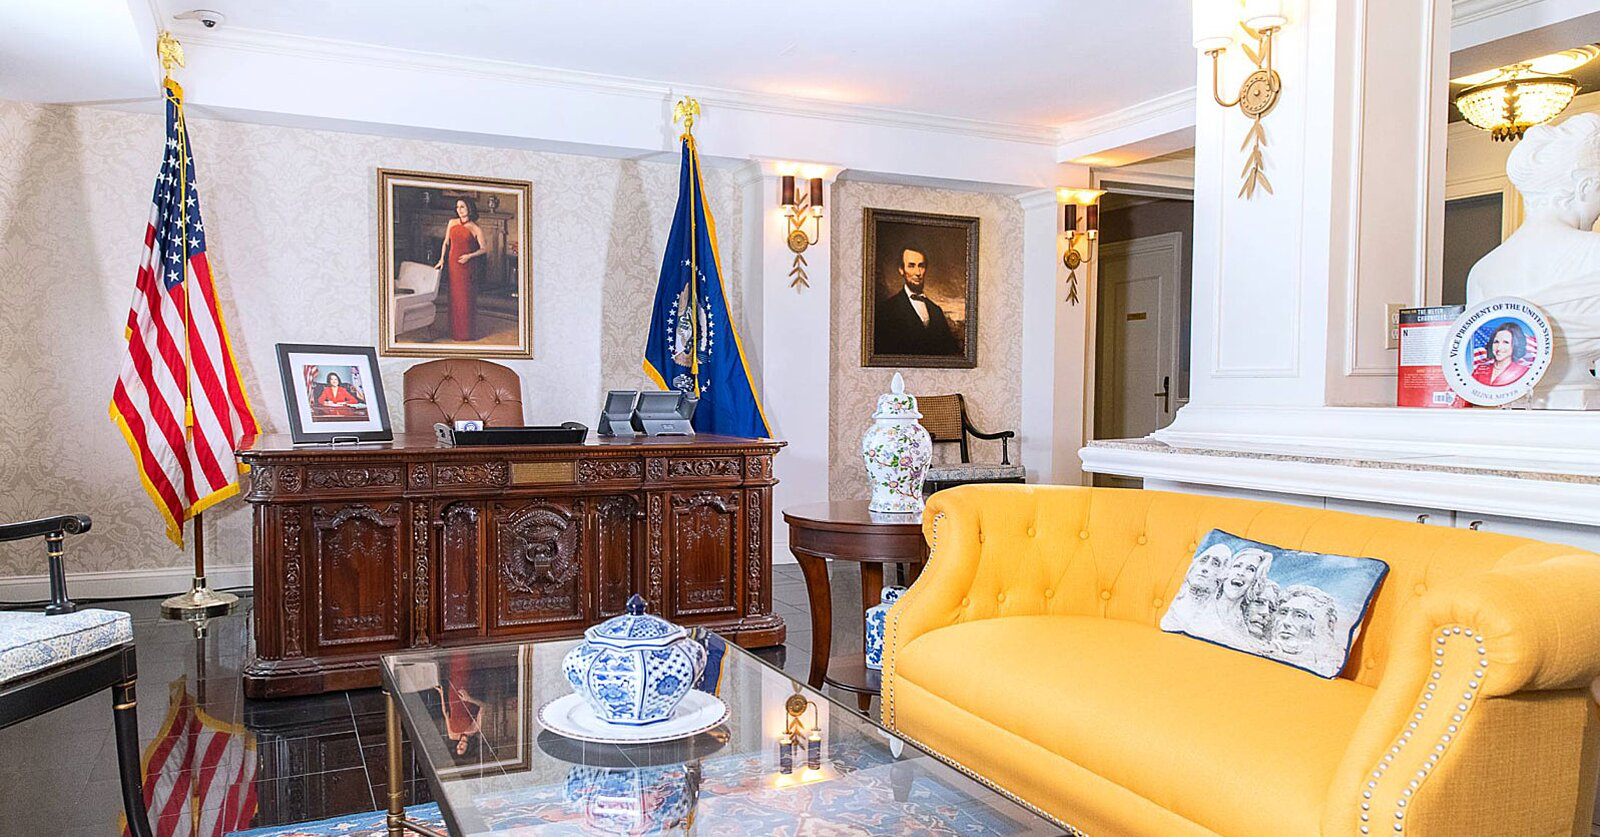 This Hotel Has a 'Veep'-themed Suite and Replica of Selina Meyer's Oval Office